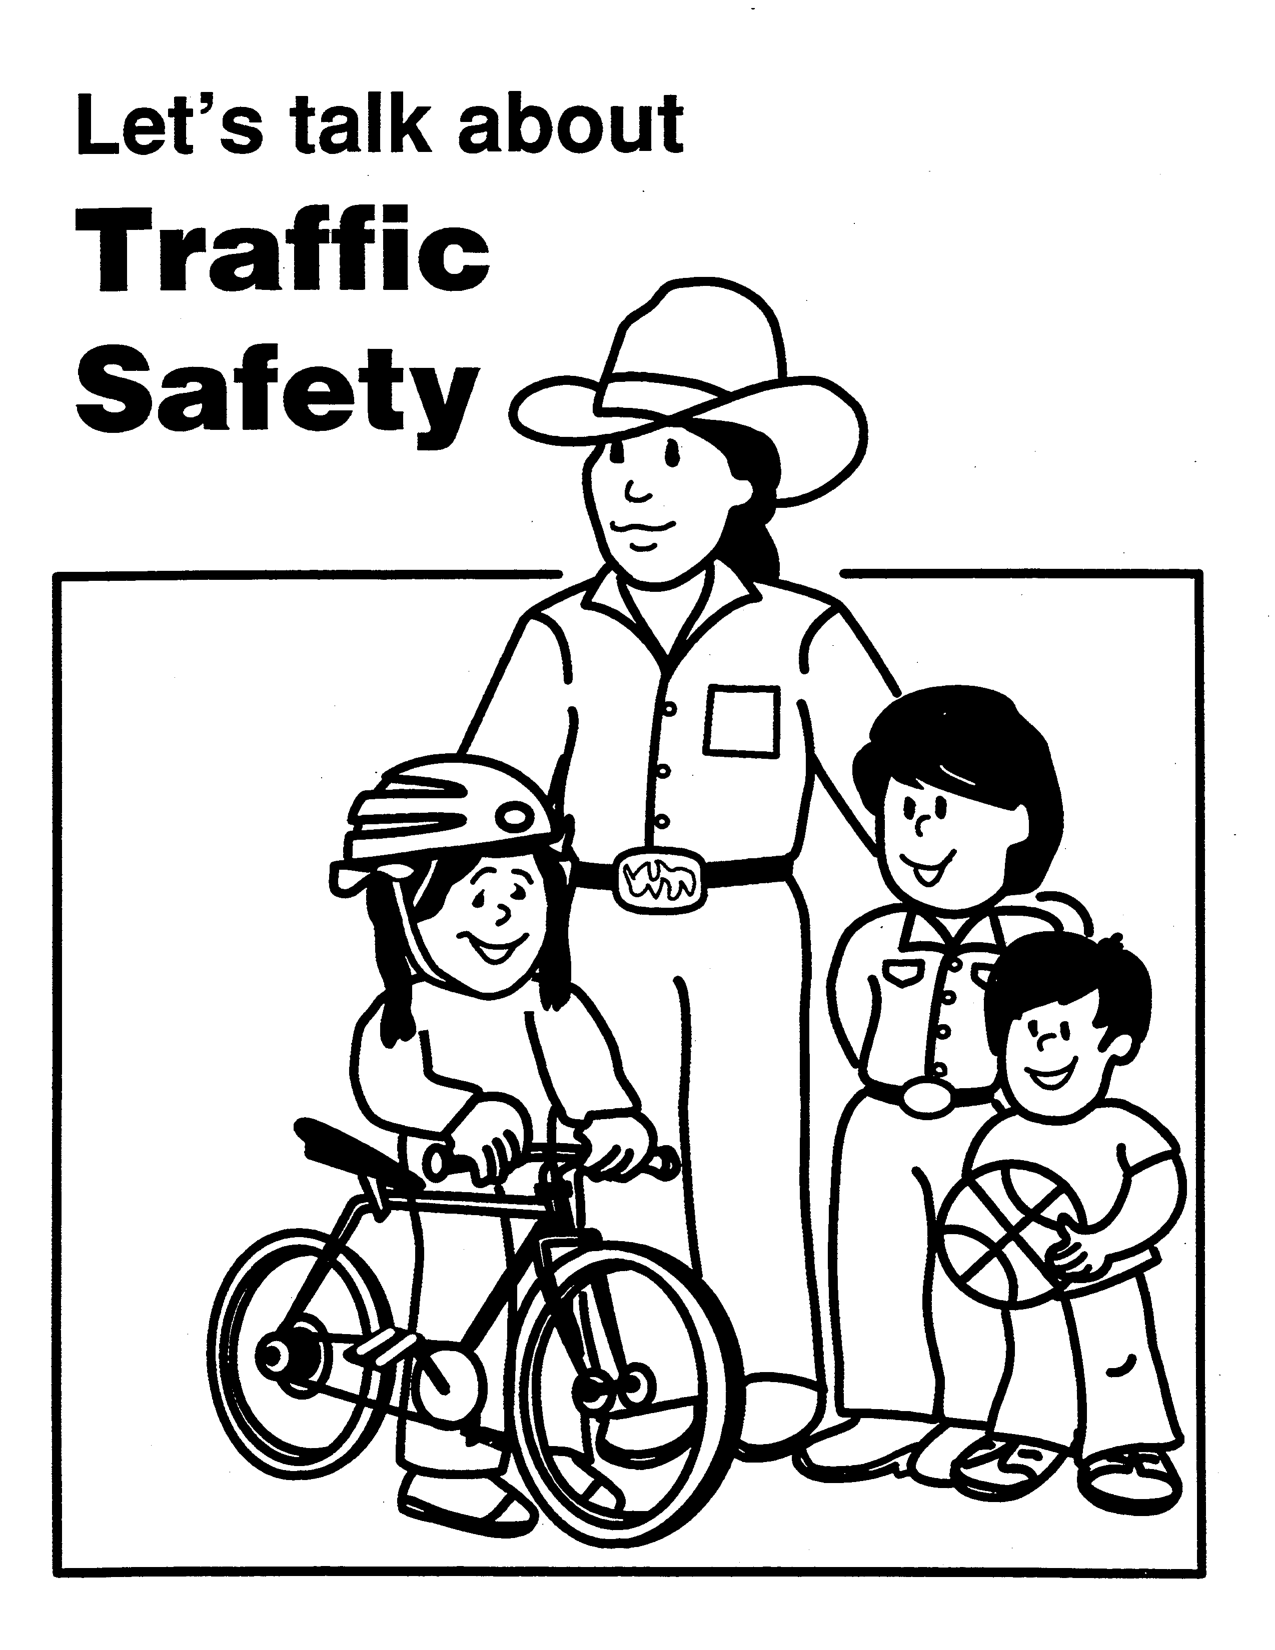 safety warning coloring pages for kids - photo #24